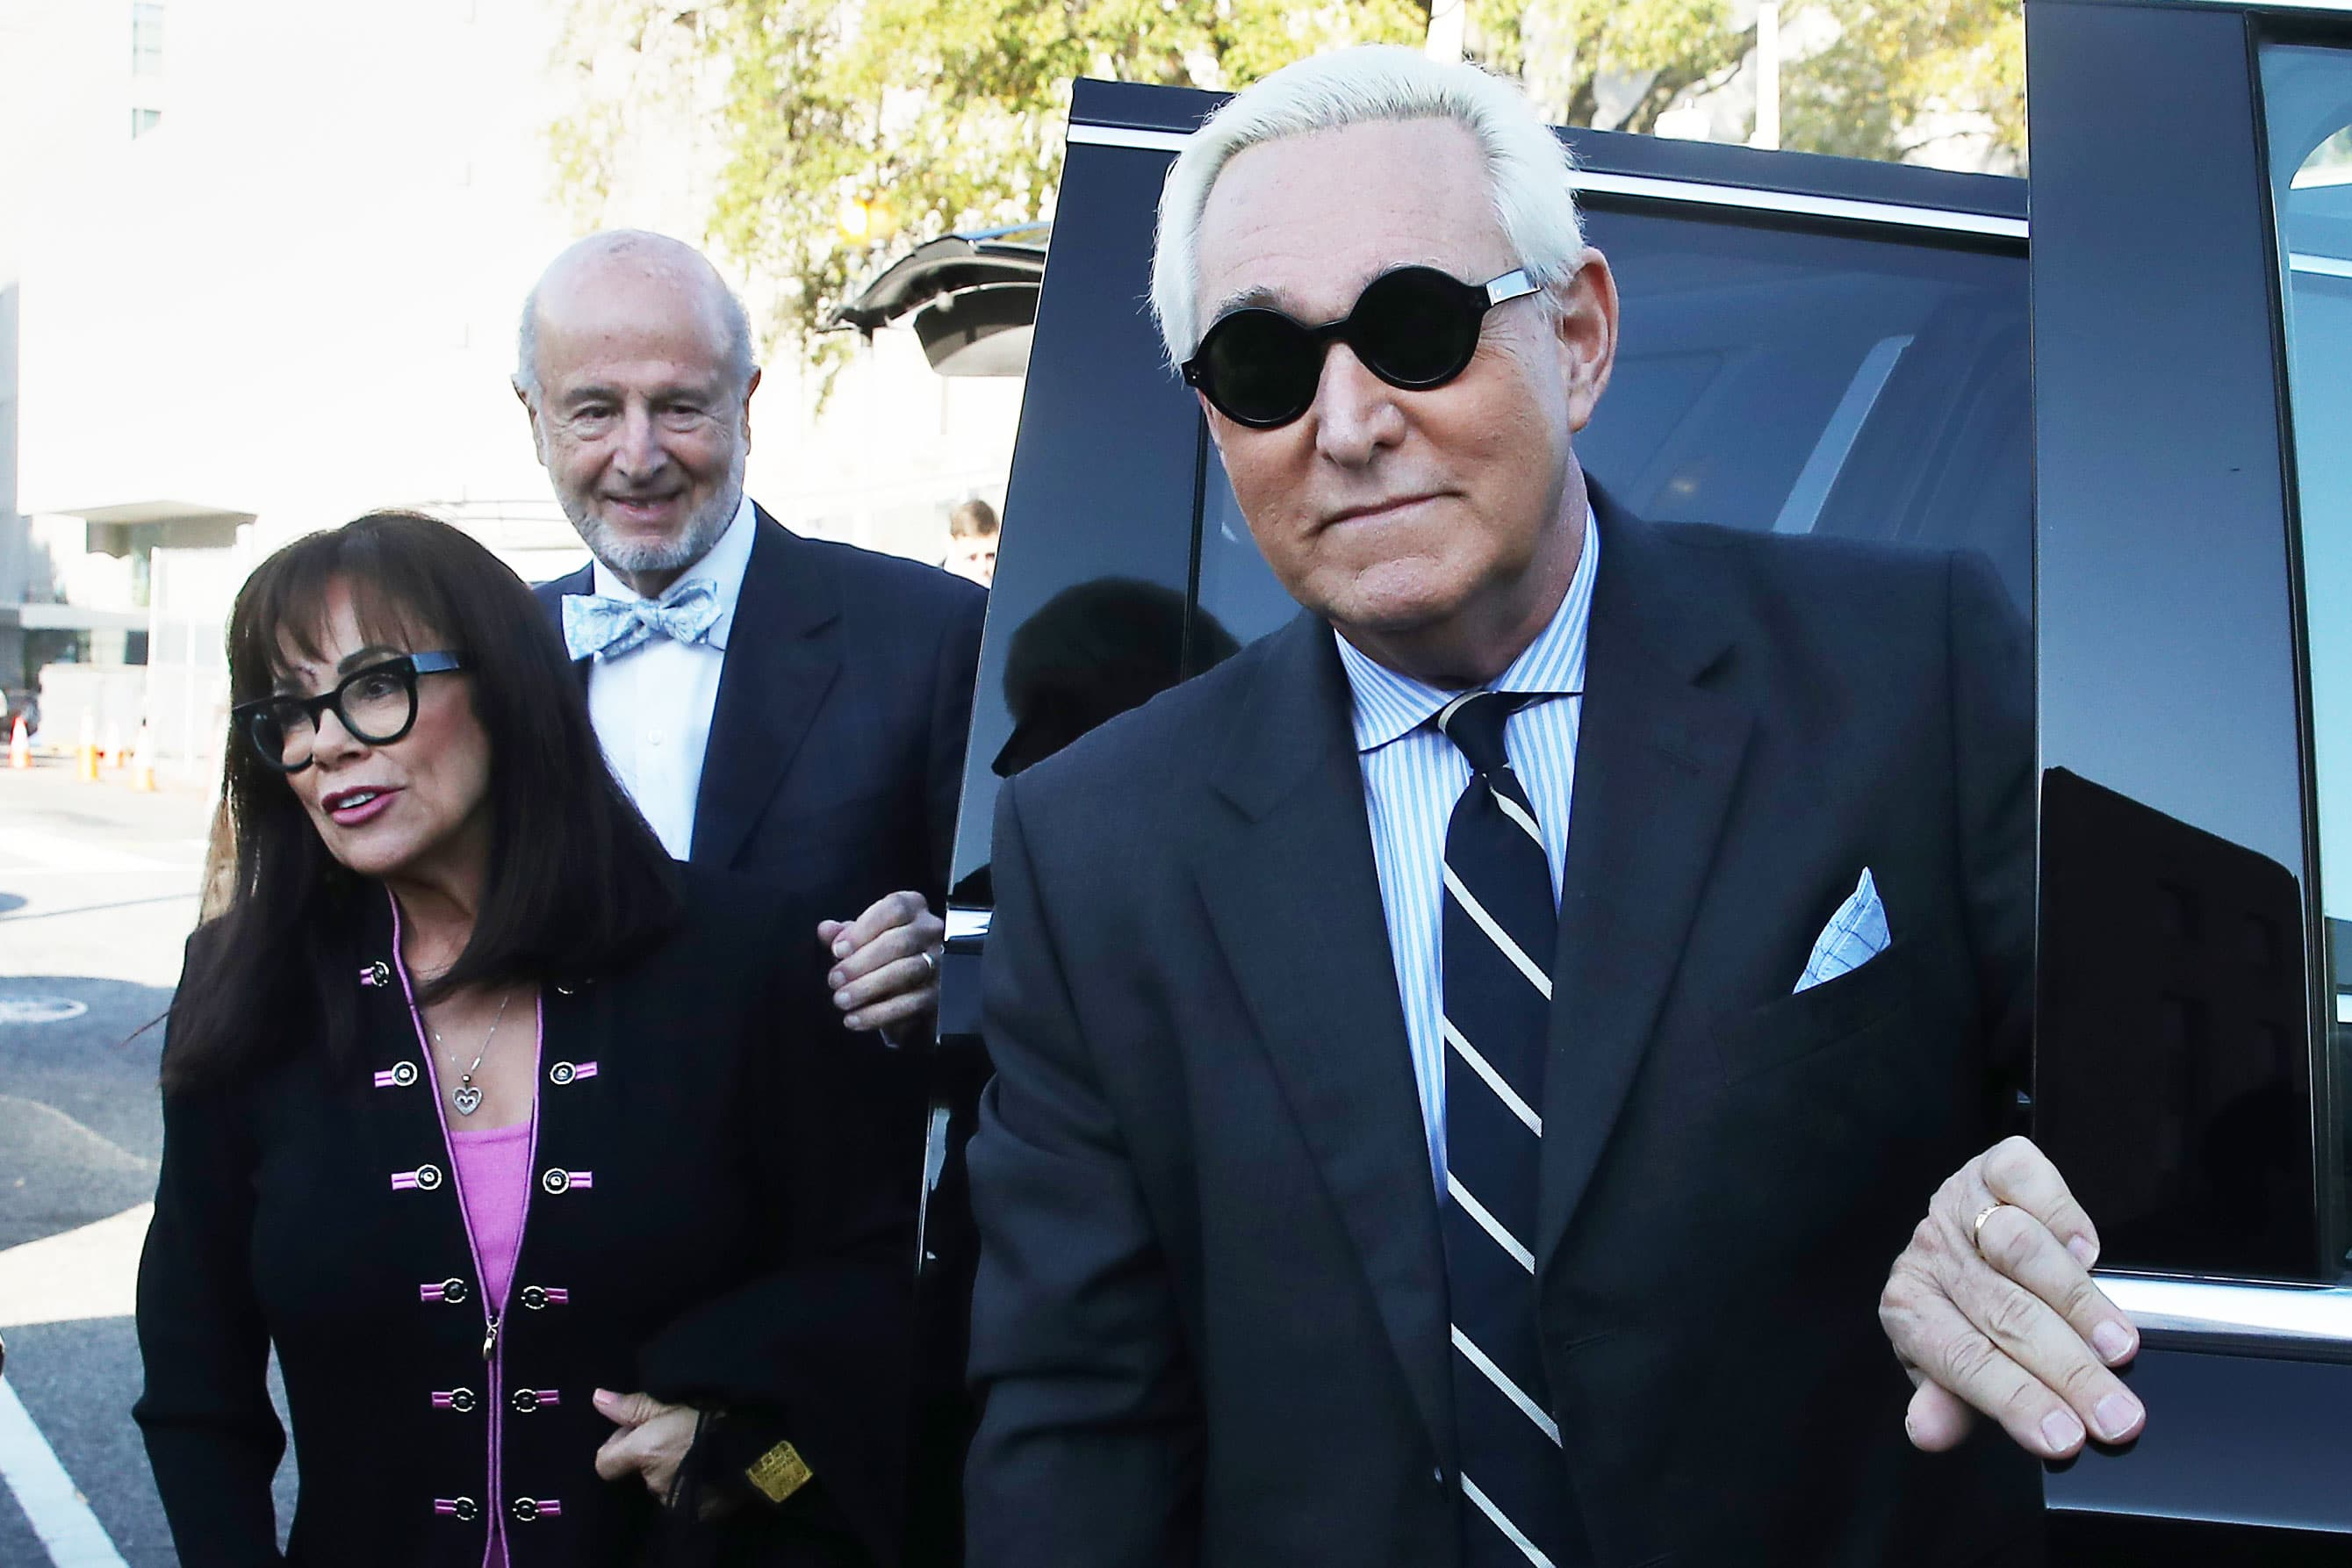 Trump talked to Roger Stone about WikiLeaks, Rick Gates says in testimony contradicting the president